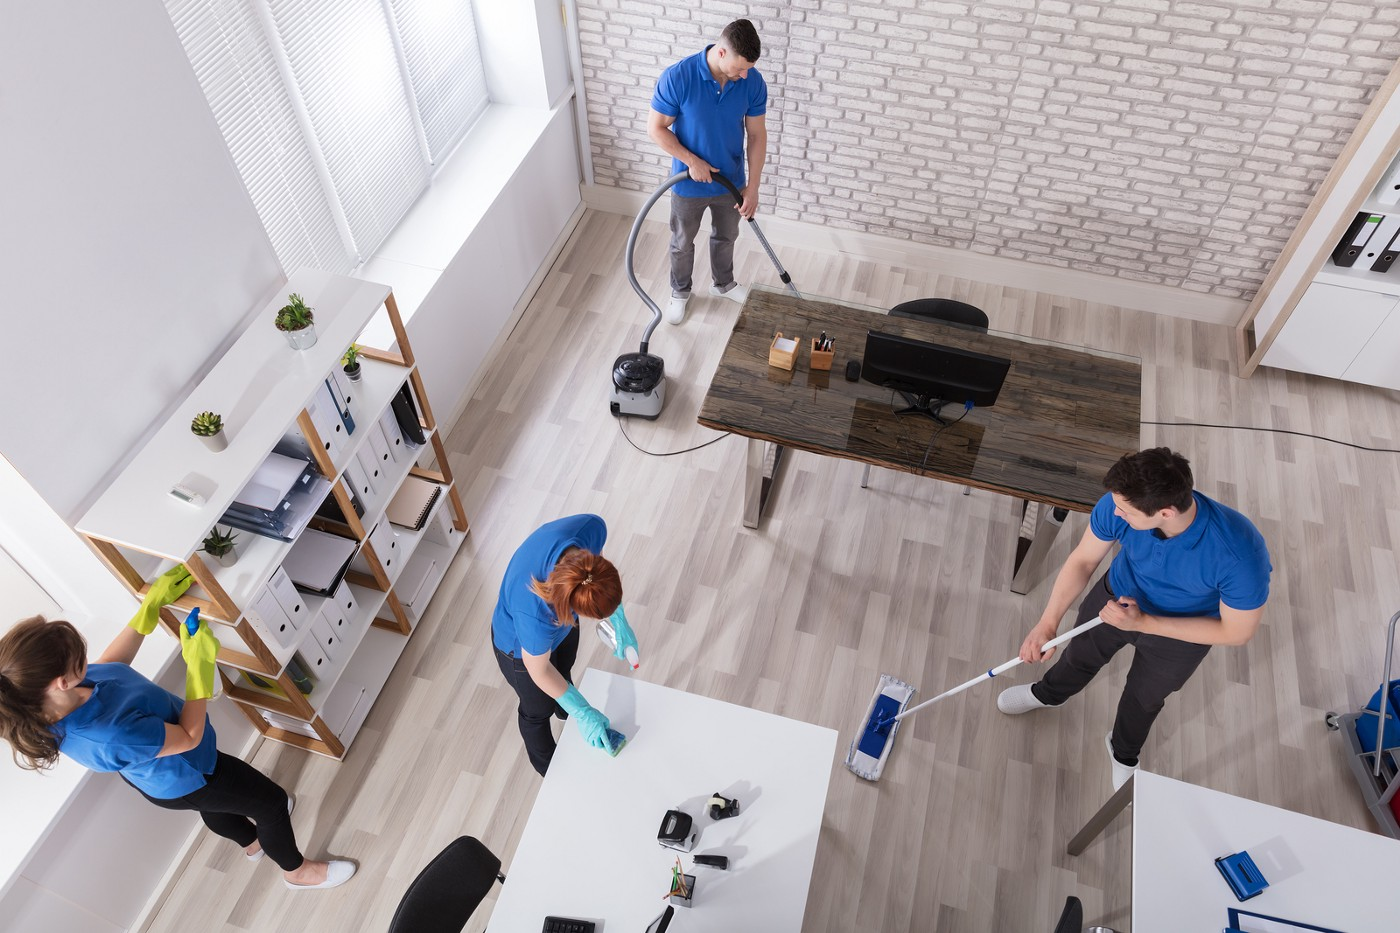 Make your property deep clean with professional after builders cleaning  services | by Vamoose Cleaning Services | Medium